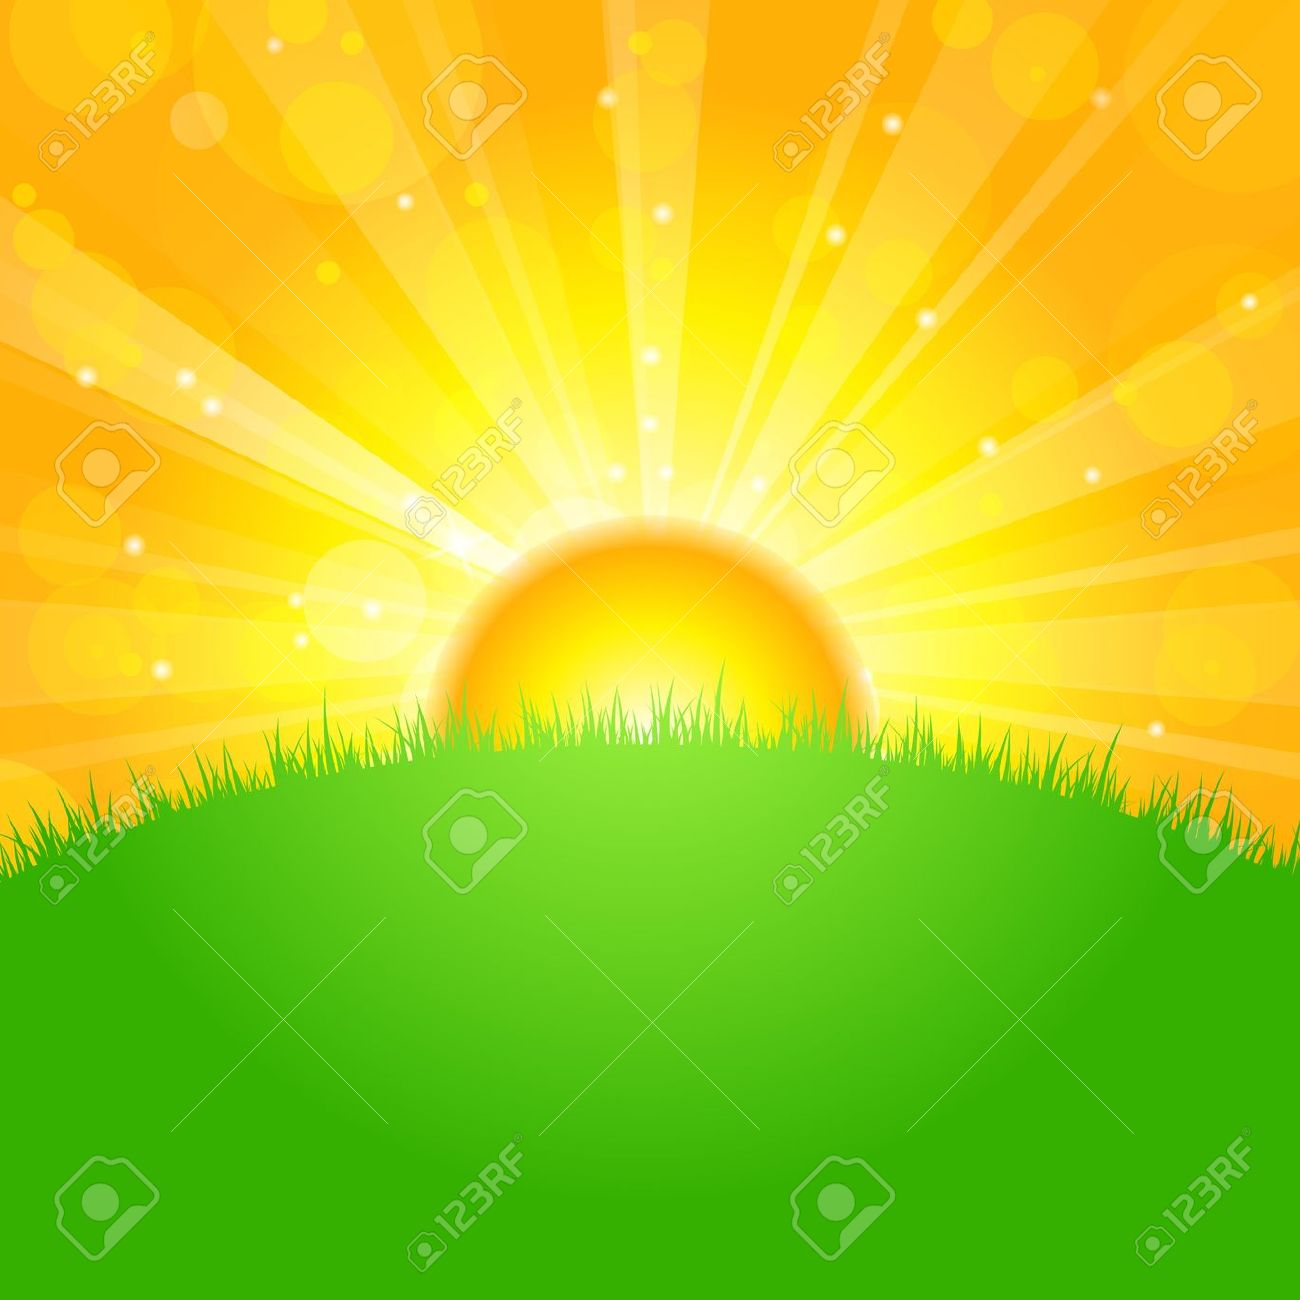 Early morning sun rise clipart 20 free Cliparts | Download